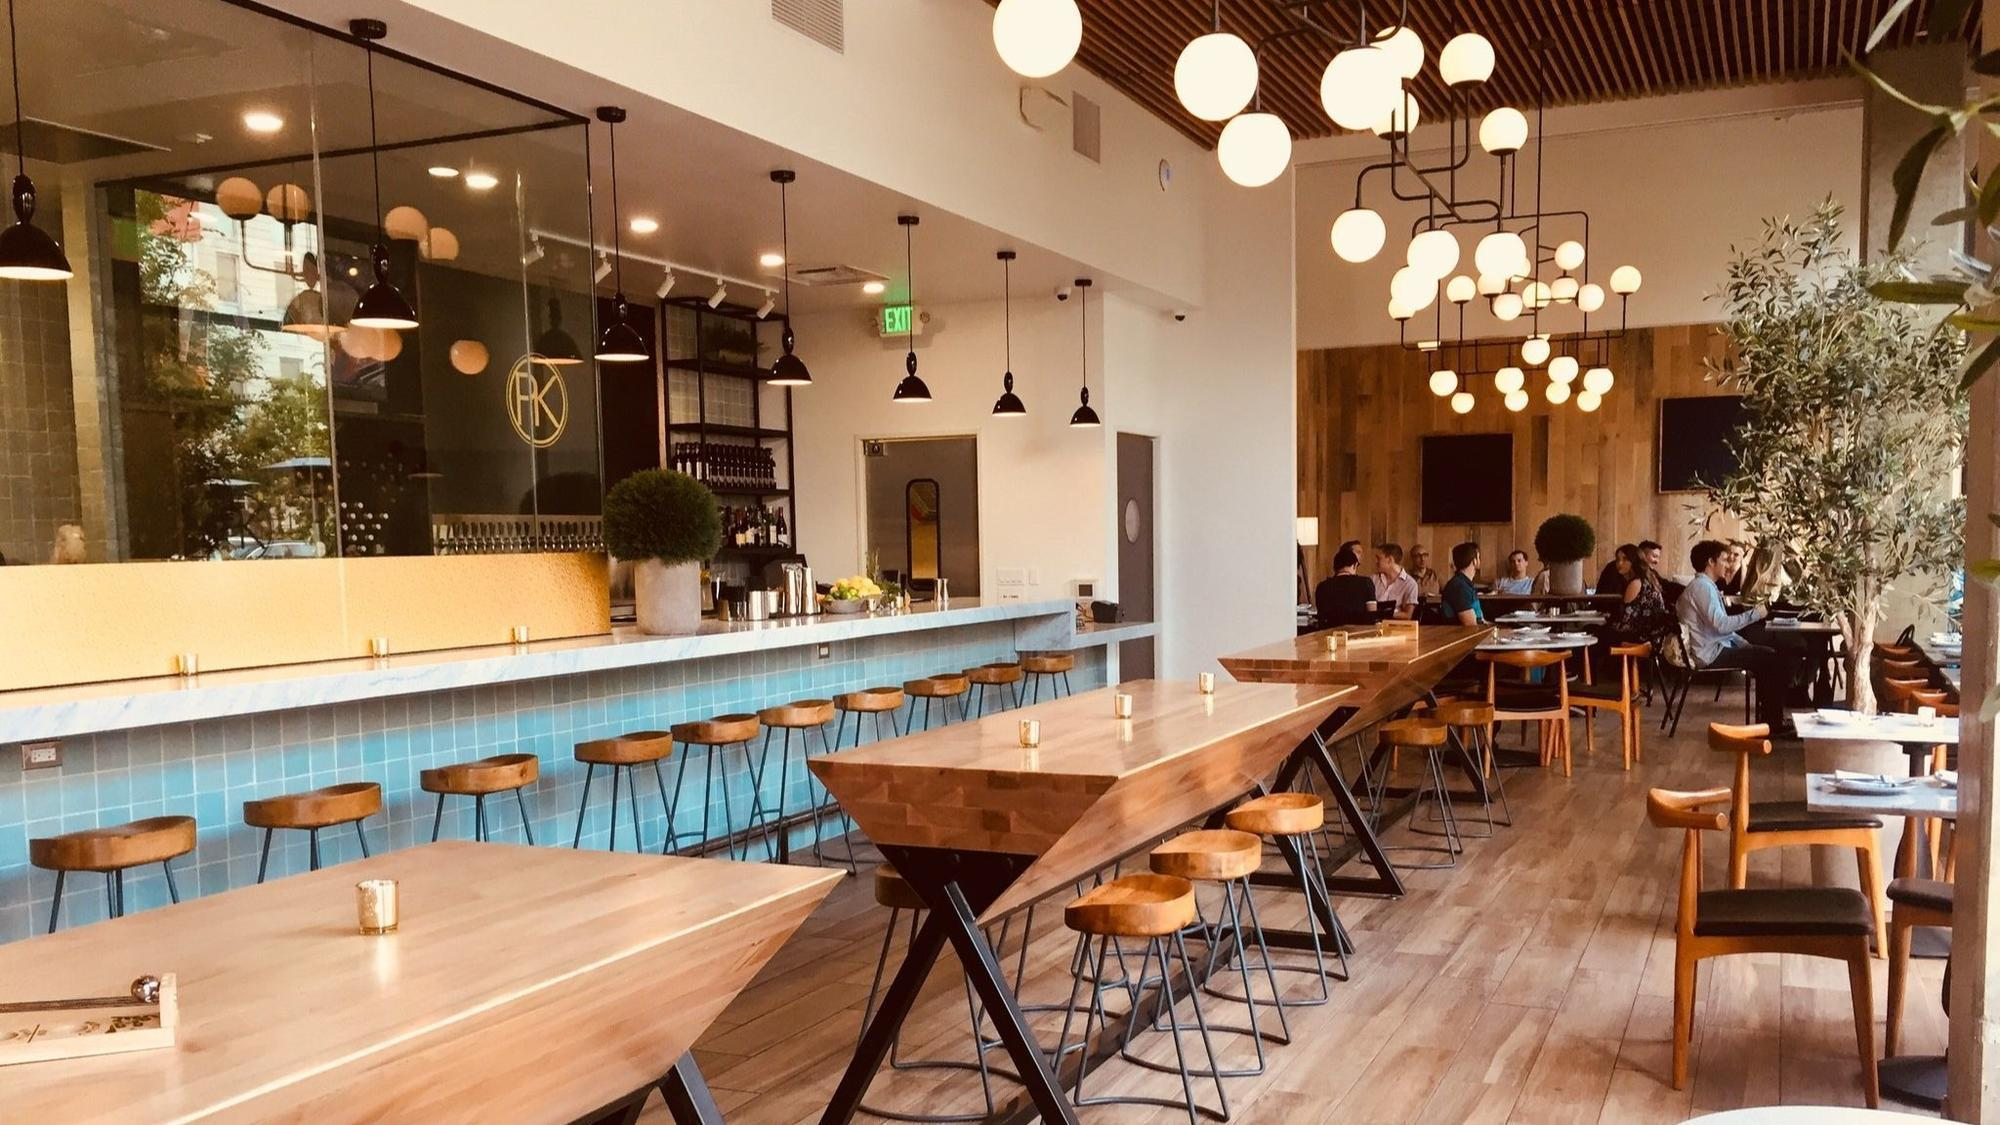 Prep Kitchen opening San Marcos location  The San Diego